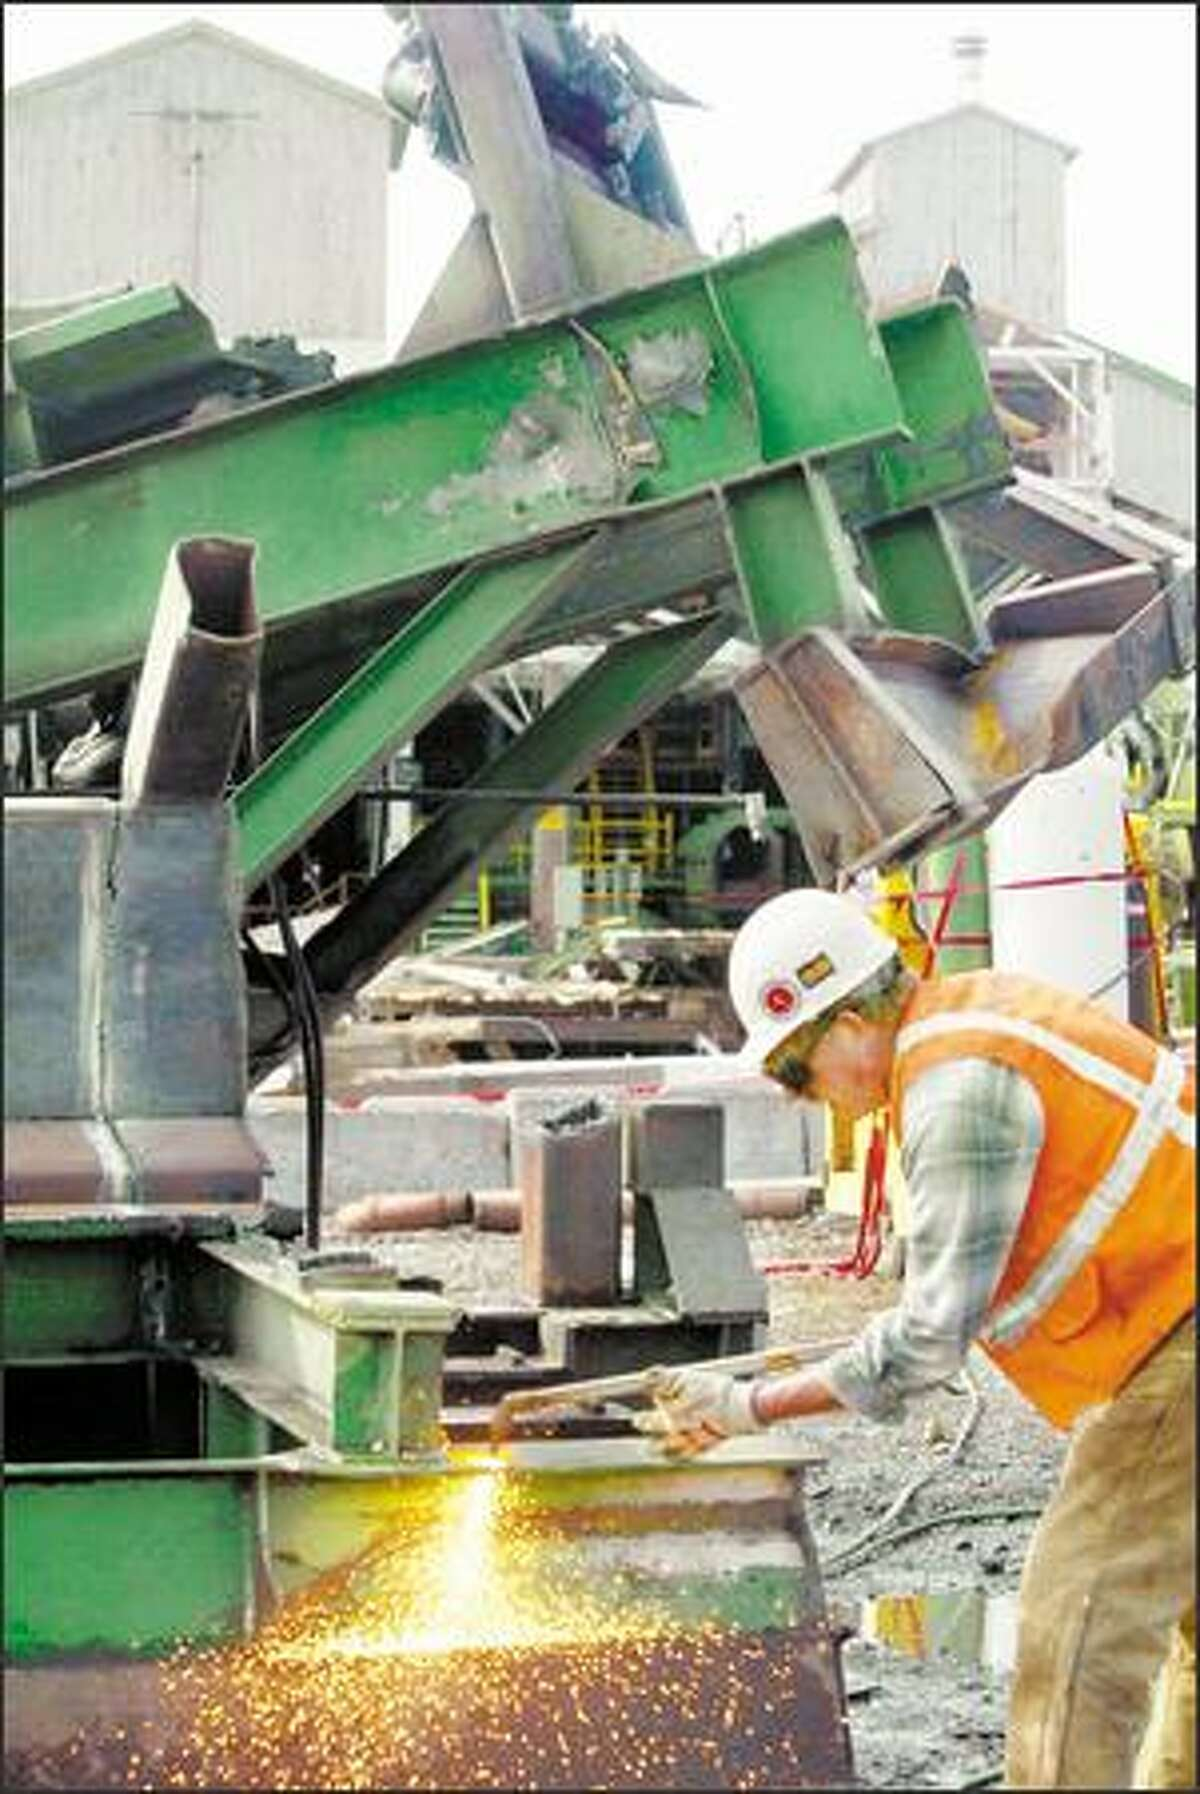 John Schneider with Staton Cos., a demolition firm, cuts up a large steel beam that was removed from the closed Weyerhaeuser mill near Enumclaw. Steel, wood and even concrete will be salvaged and reused.